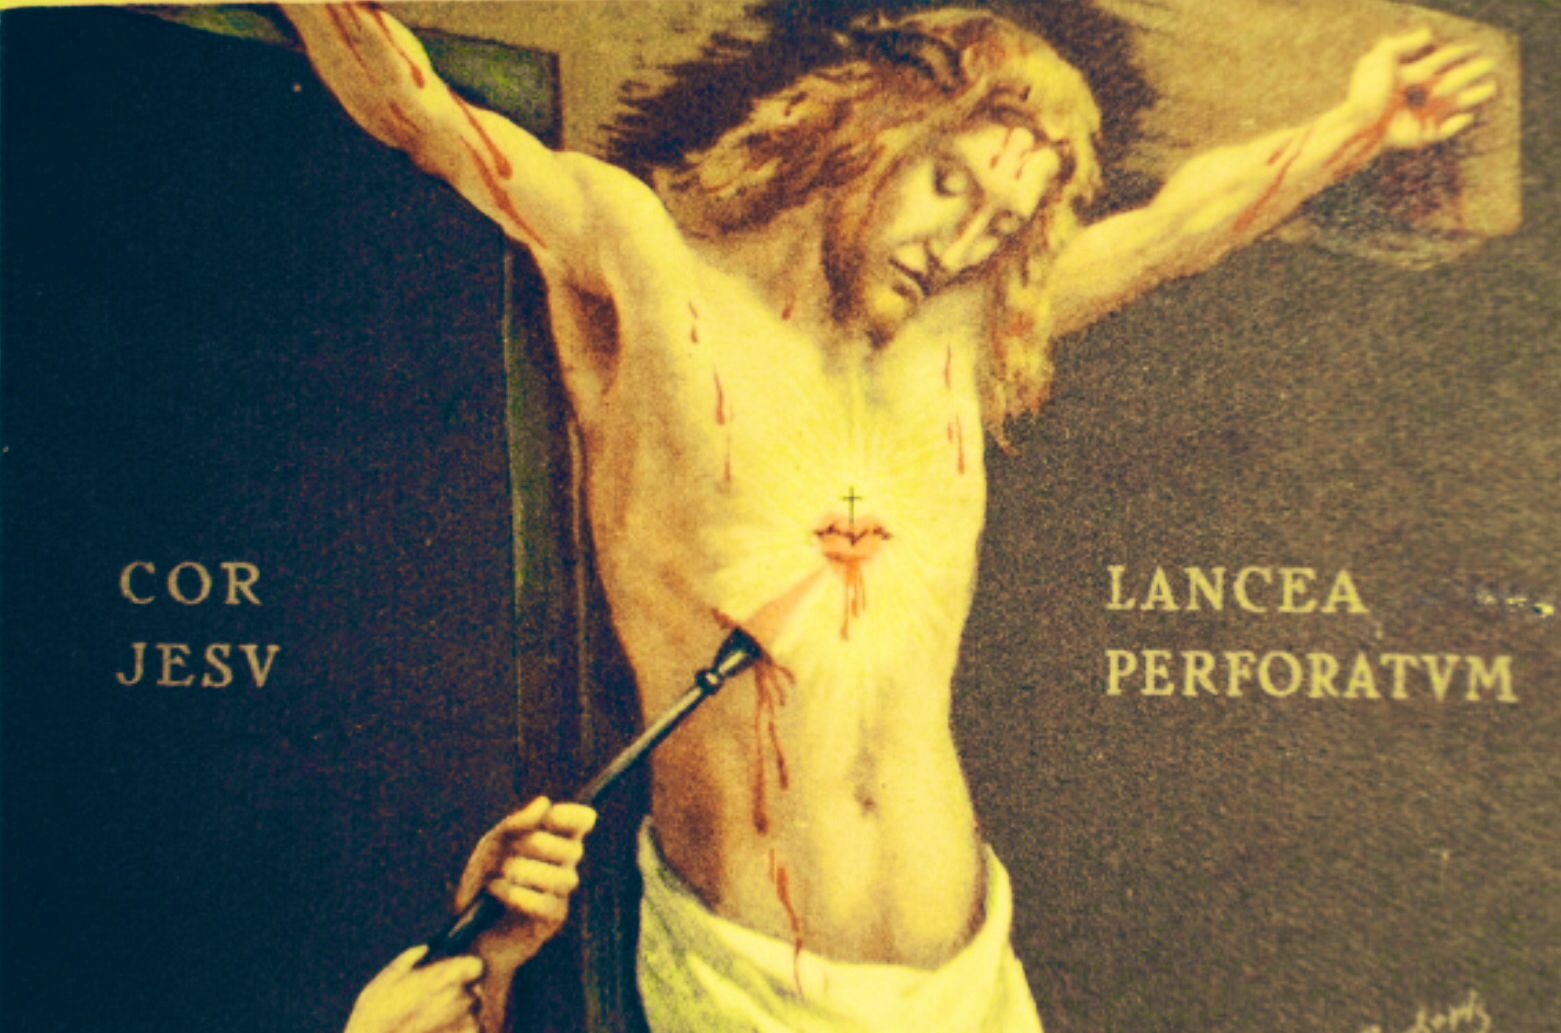 Sacred Heart of Jesus, pierced with a lance | Heart of jesus, Jesus, Traditional catholicism